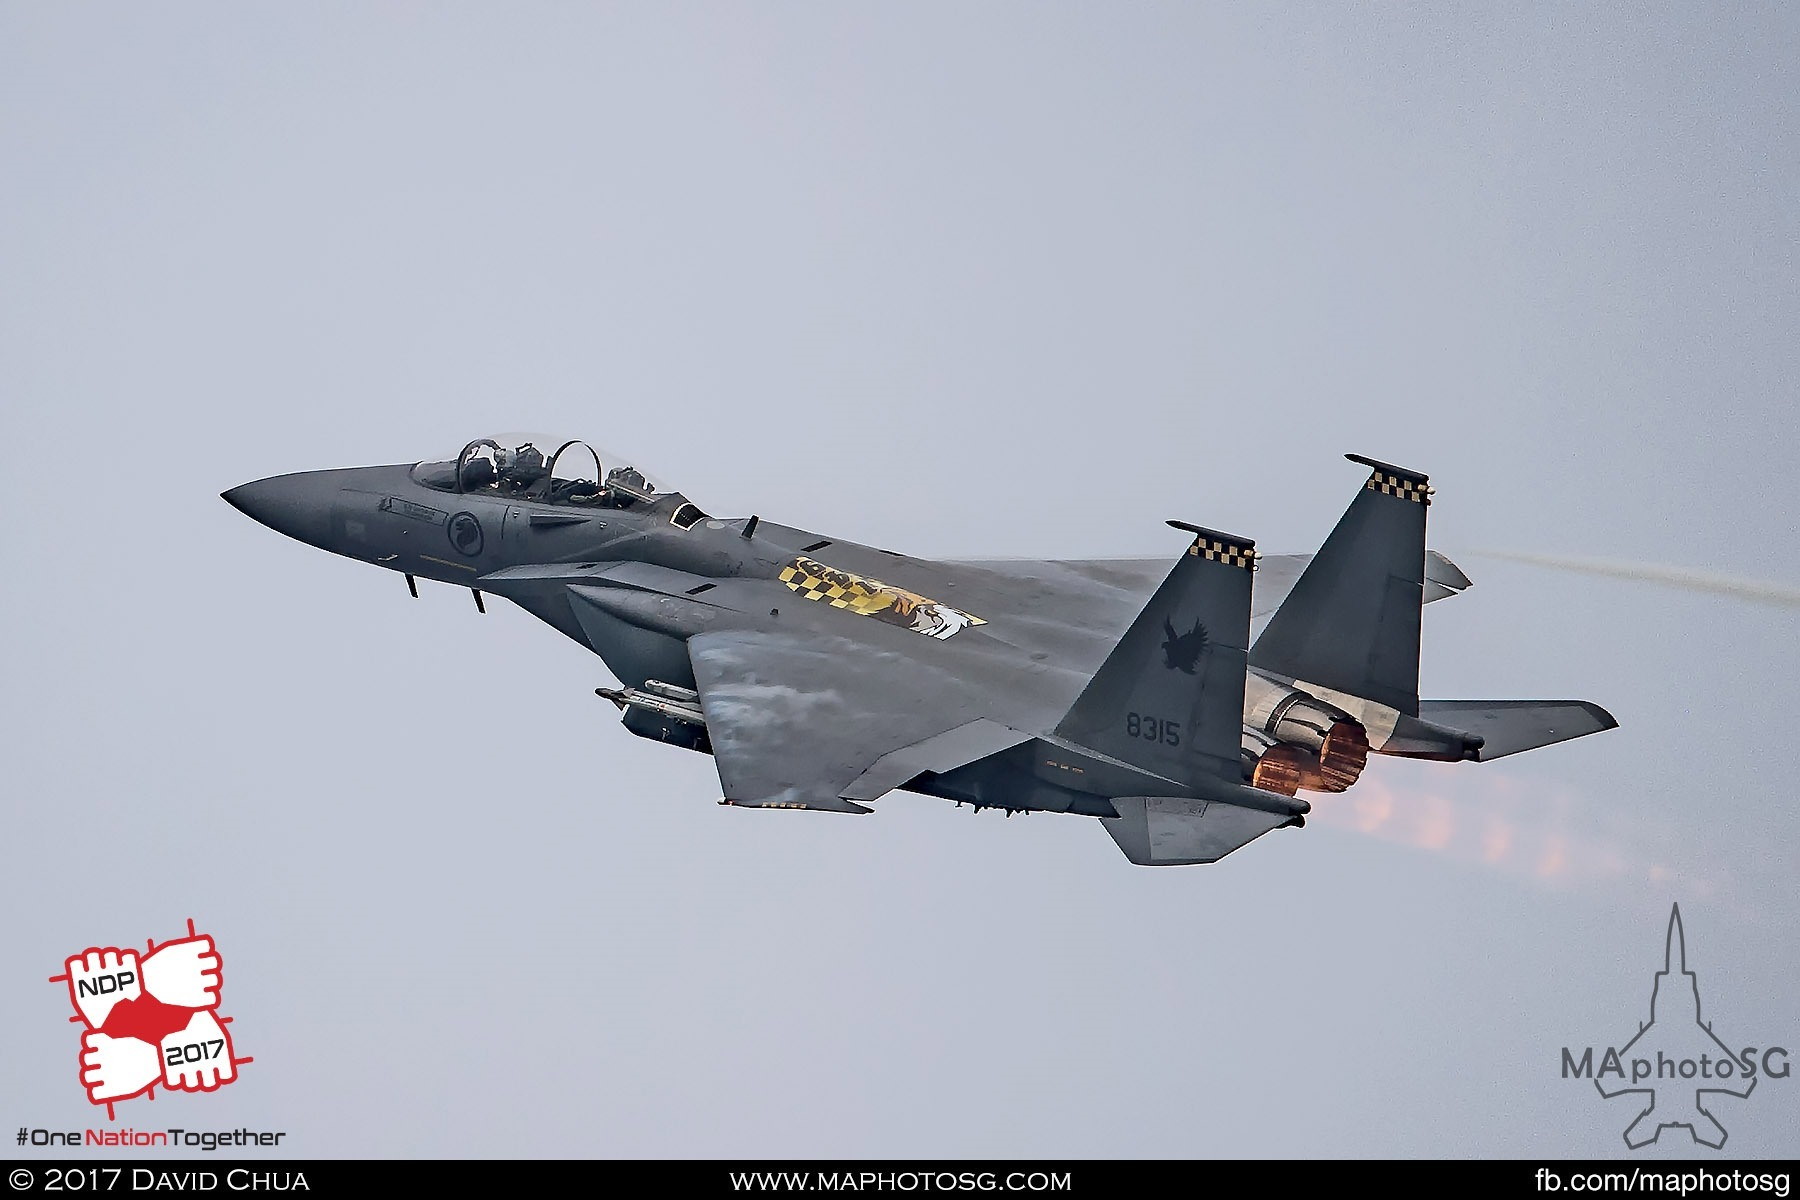 24. Lead aircraft of the bomb burst flown by Commanding Officer 149 Squadron, SLTC Goh Sim Aik and WSO CPT Desmond Tan in is this special 149SQN airbrake livery F-15SG.